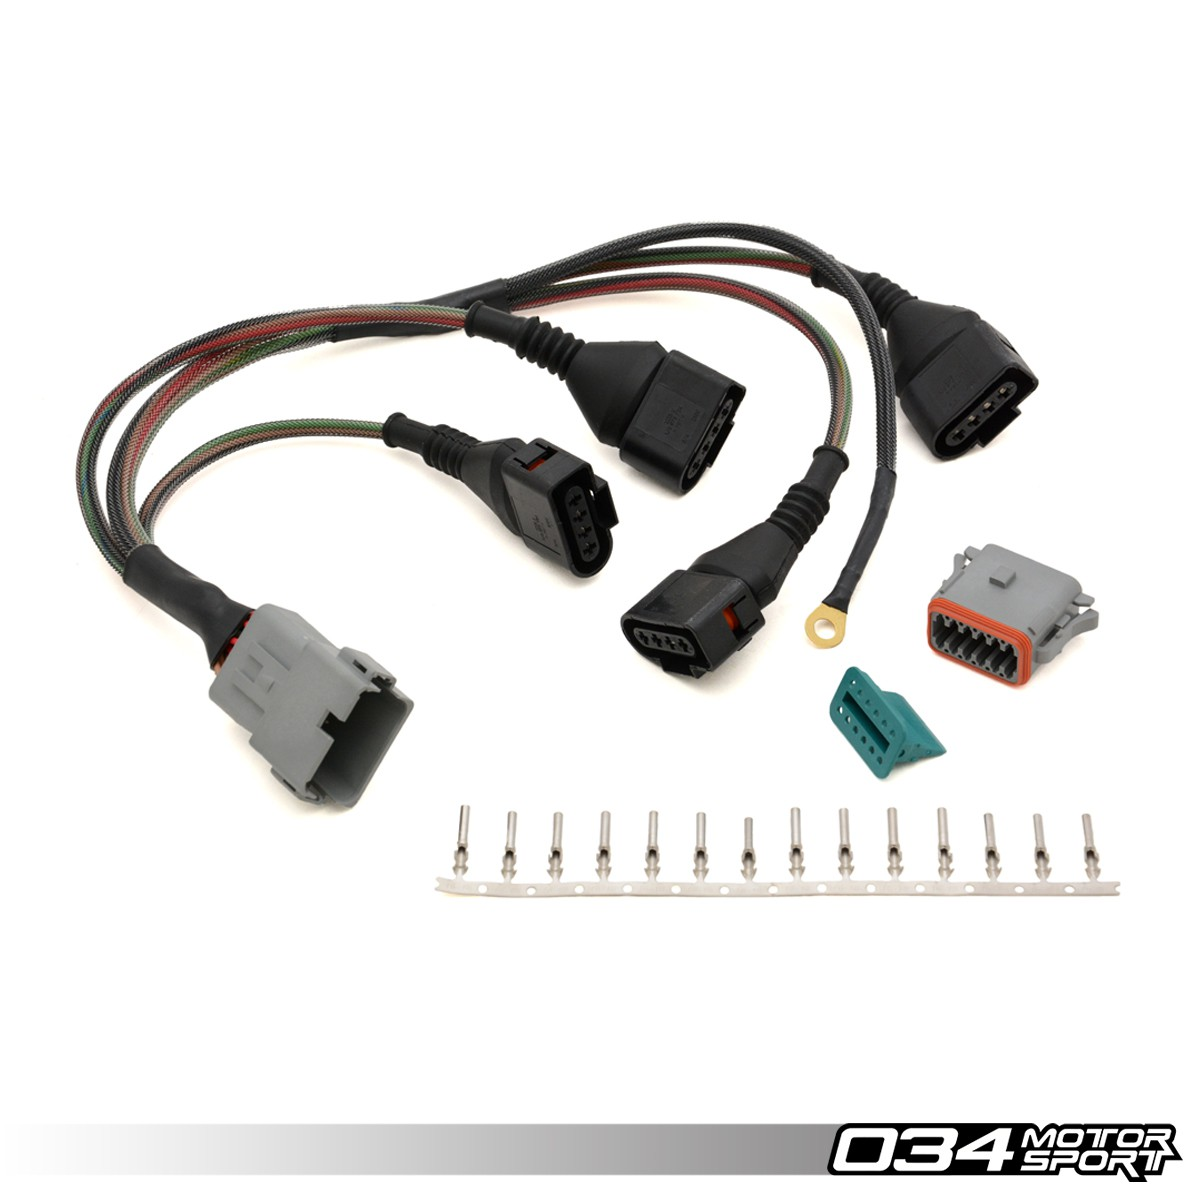 repair update harness audi volkswagen 18t with 4 wire coils 034motorsport 034 701 0004 2 repair update harness, audi volkswagen 1 8t with 4 wire coils  at alyssarenee.co